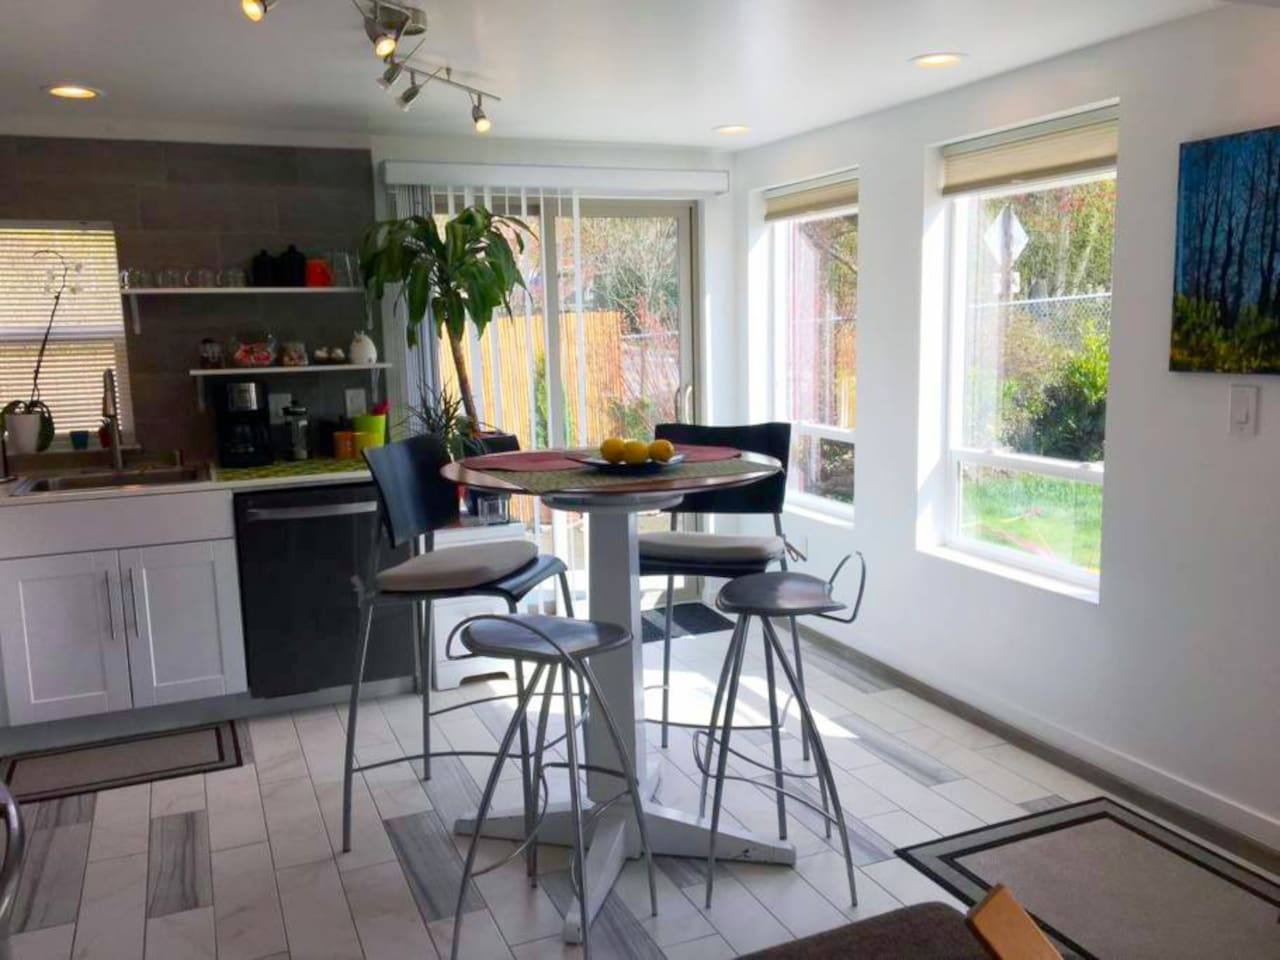 Large, South facing windows flood the kitchen with natural light throughout the day.